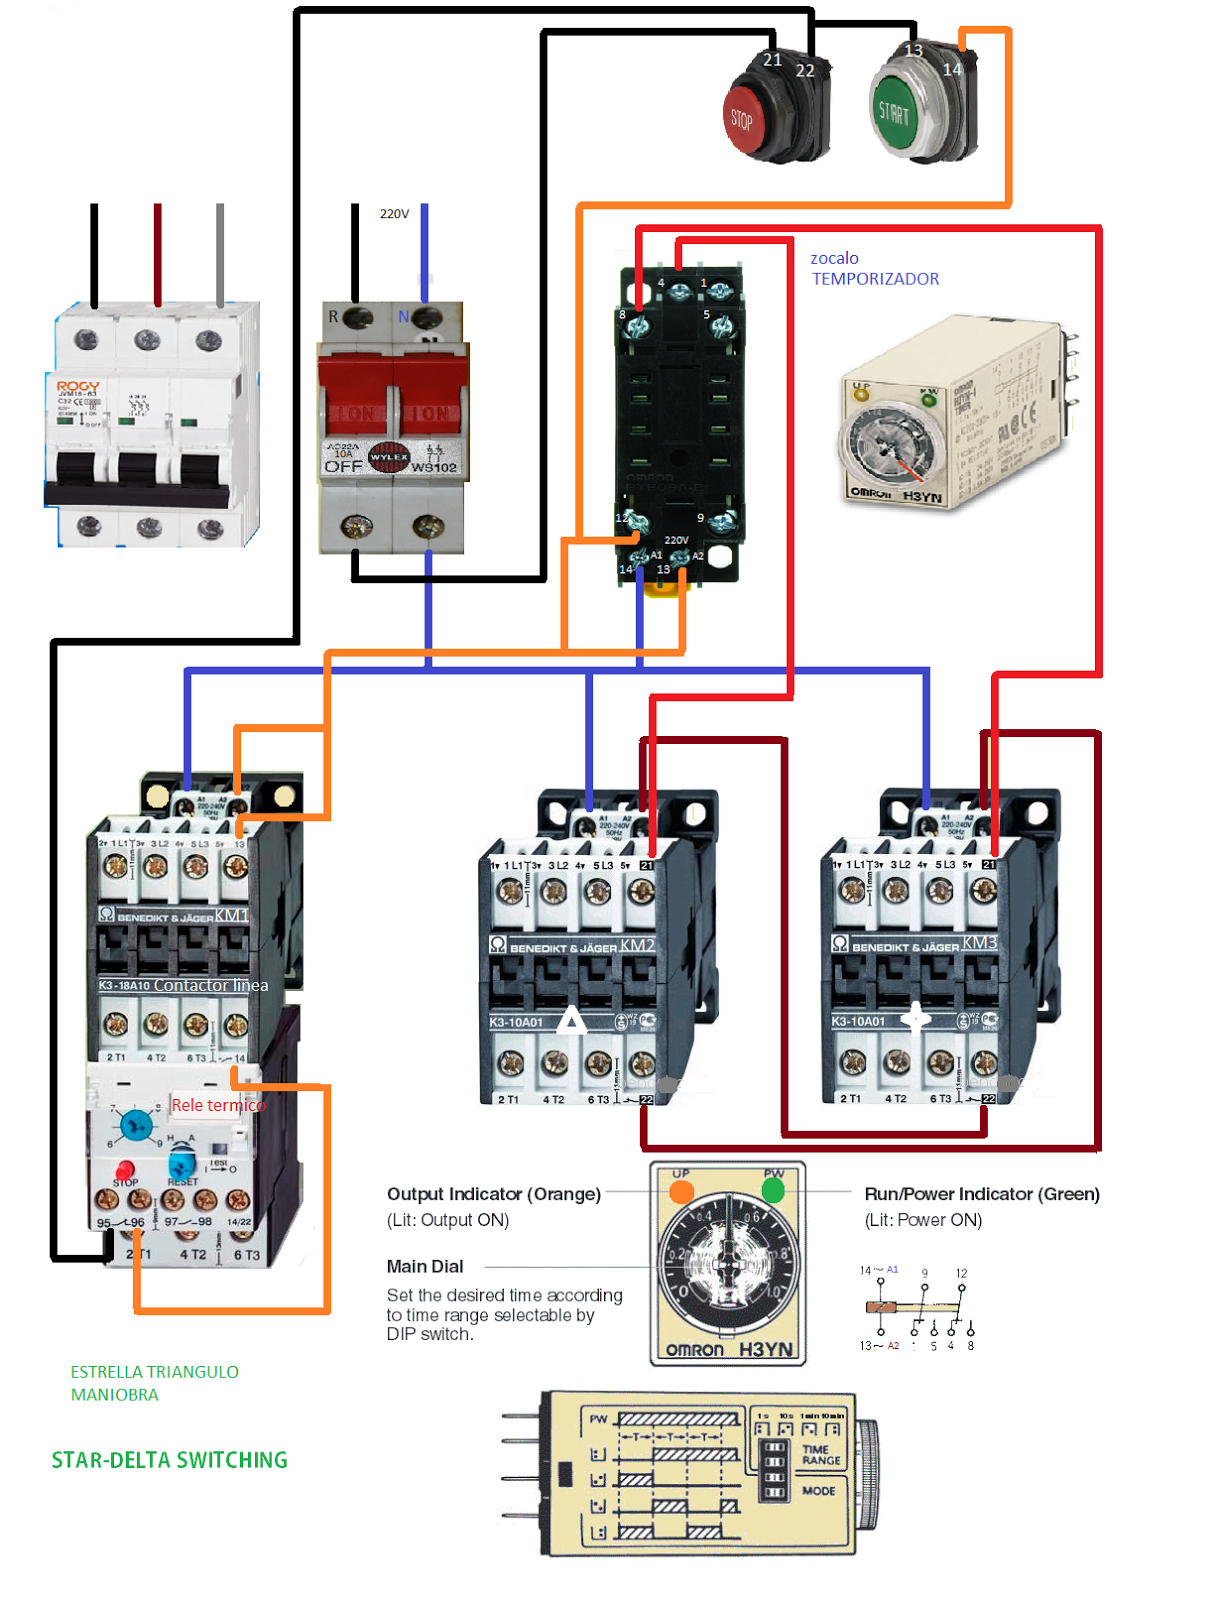 star delta switching electrical engineering blog electrical circuit diagram electrical plan electrical engineering [ 1219 x 1600 Pixel ]